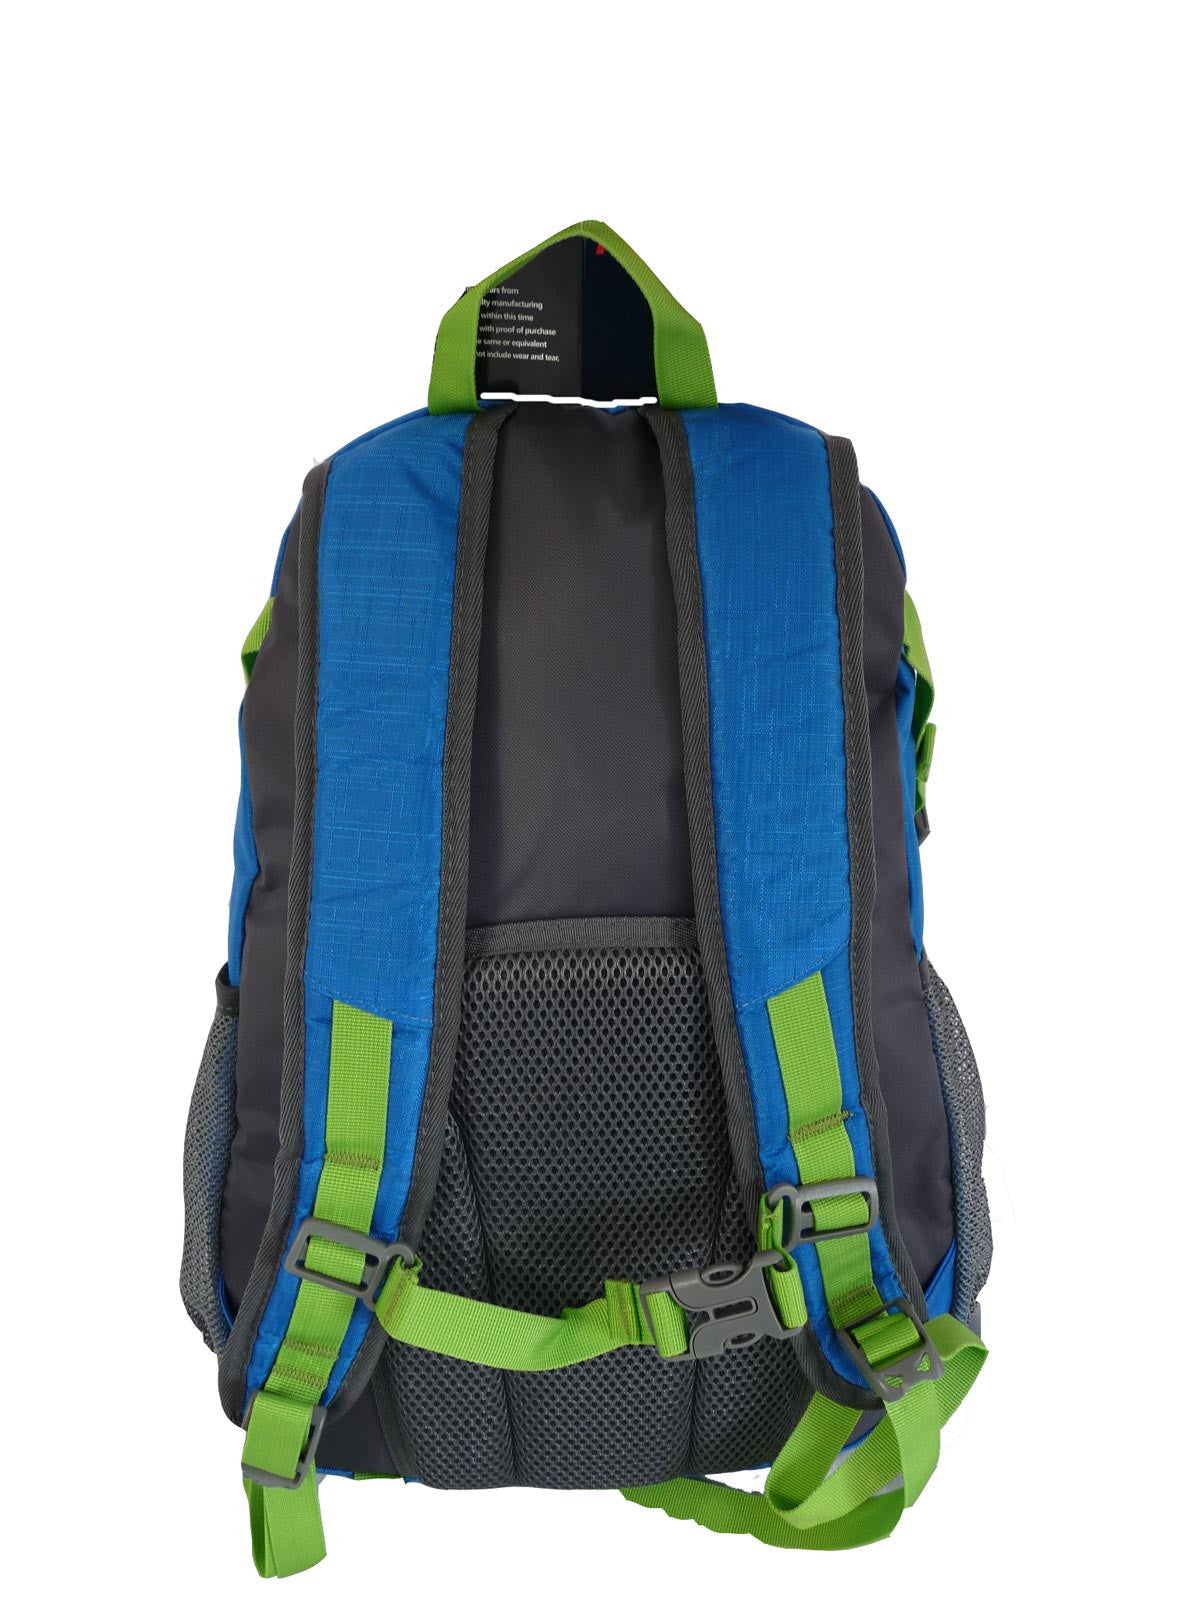 Hi High Viz Vis Backpack RL47LB Light Blue Back View 2